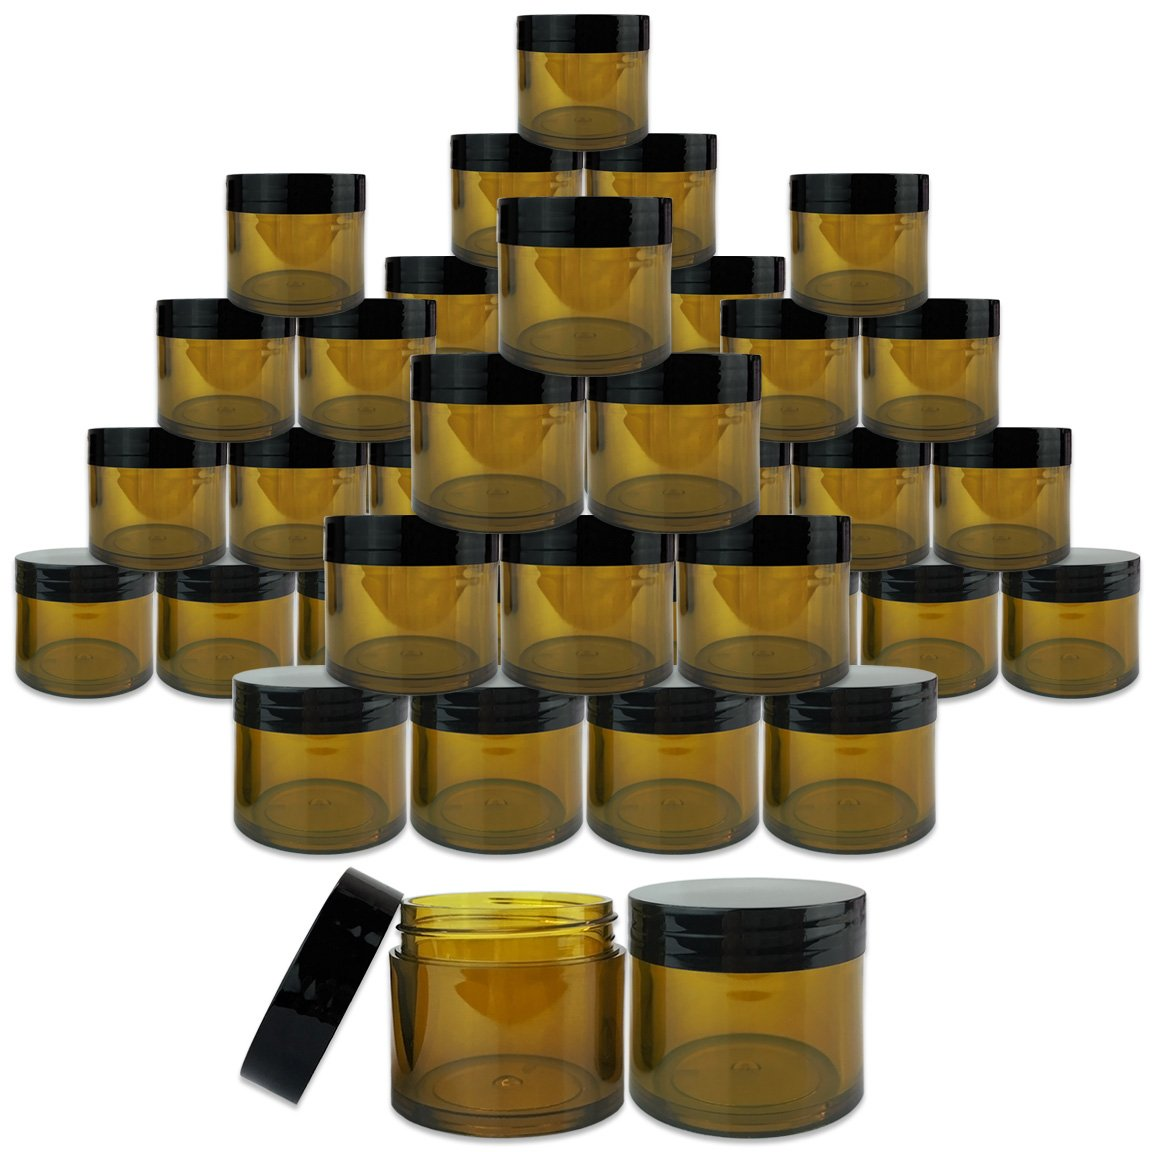 Beauticom 180 Pieces 30G/30ML(1 Oz) Thick Wall Round AMBER Plastic Container Jars with Black Flat Top Lids - Leak-Proof Jar - BPA Free